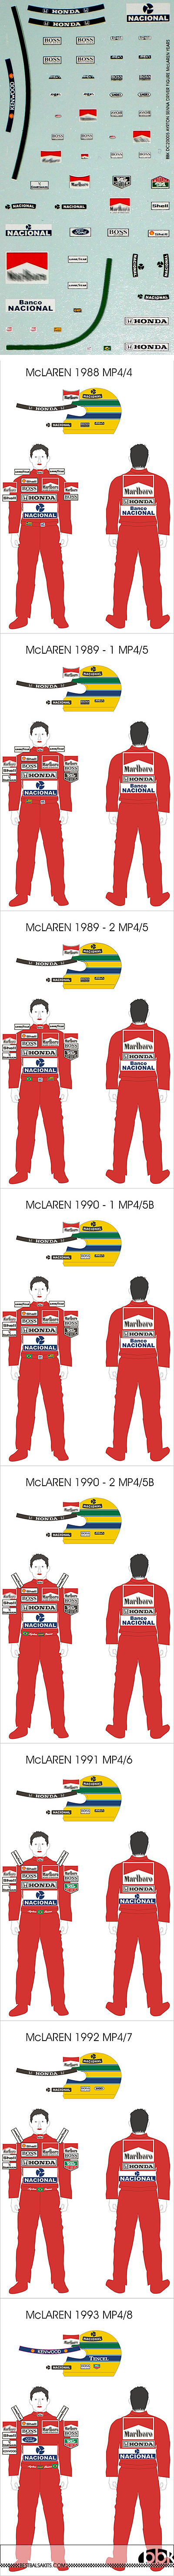 BBK 1/20 SENNA DECAL McLAREN MP4/4 MP4/5 MP4/6 MP4/7 MP4/8